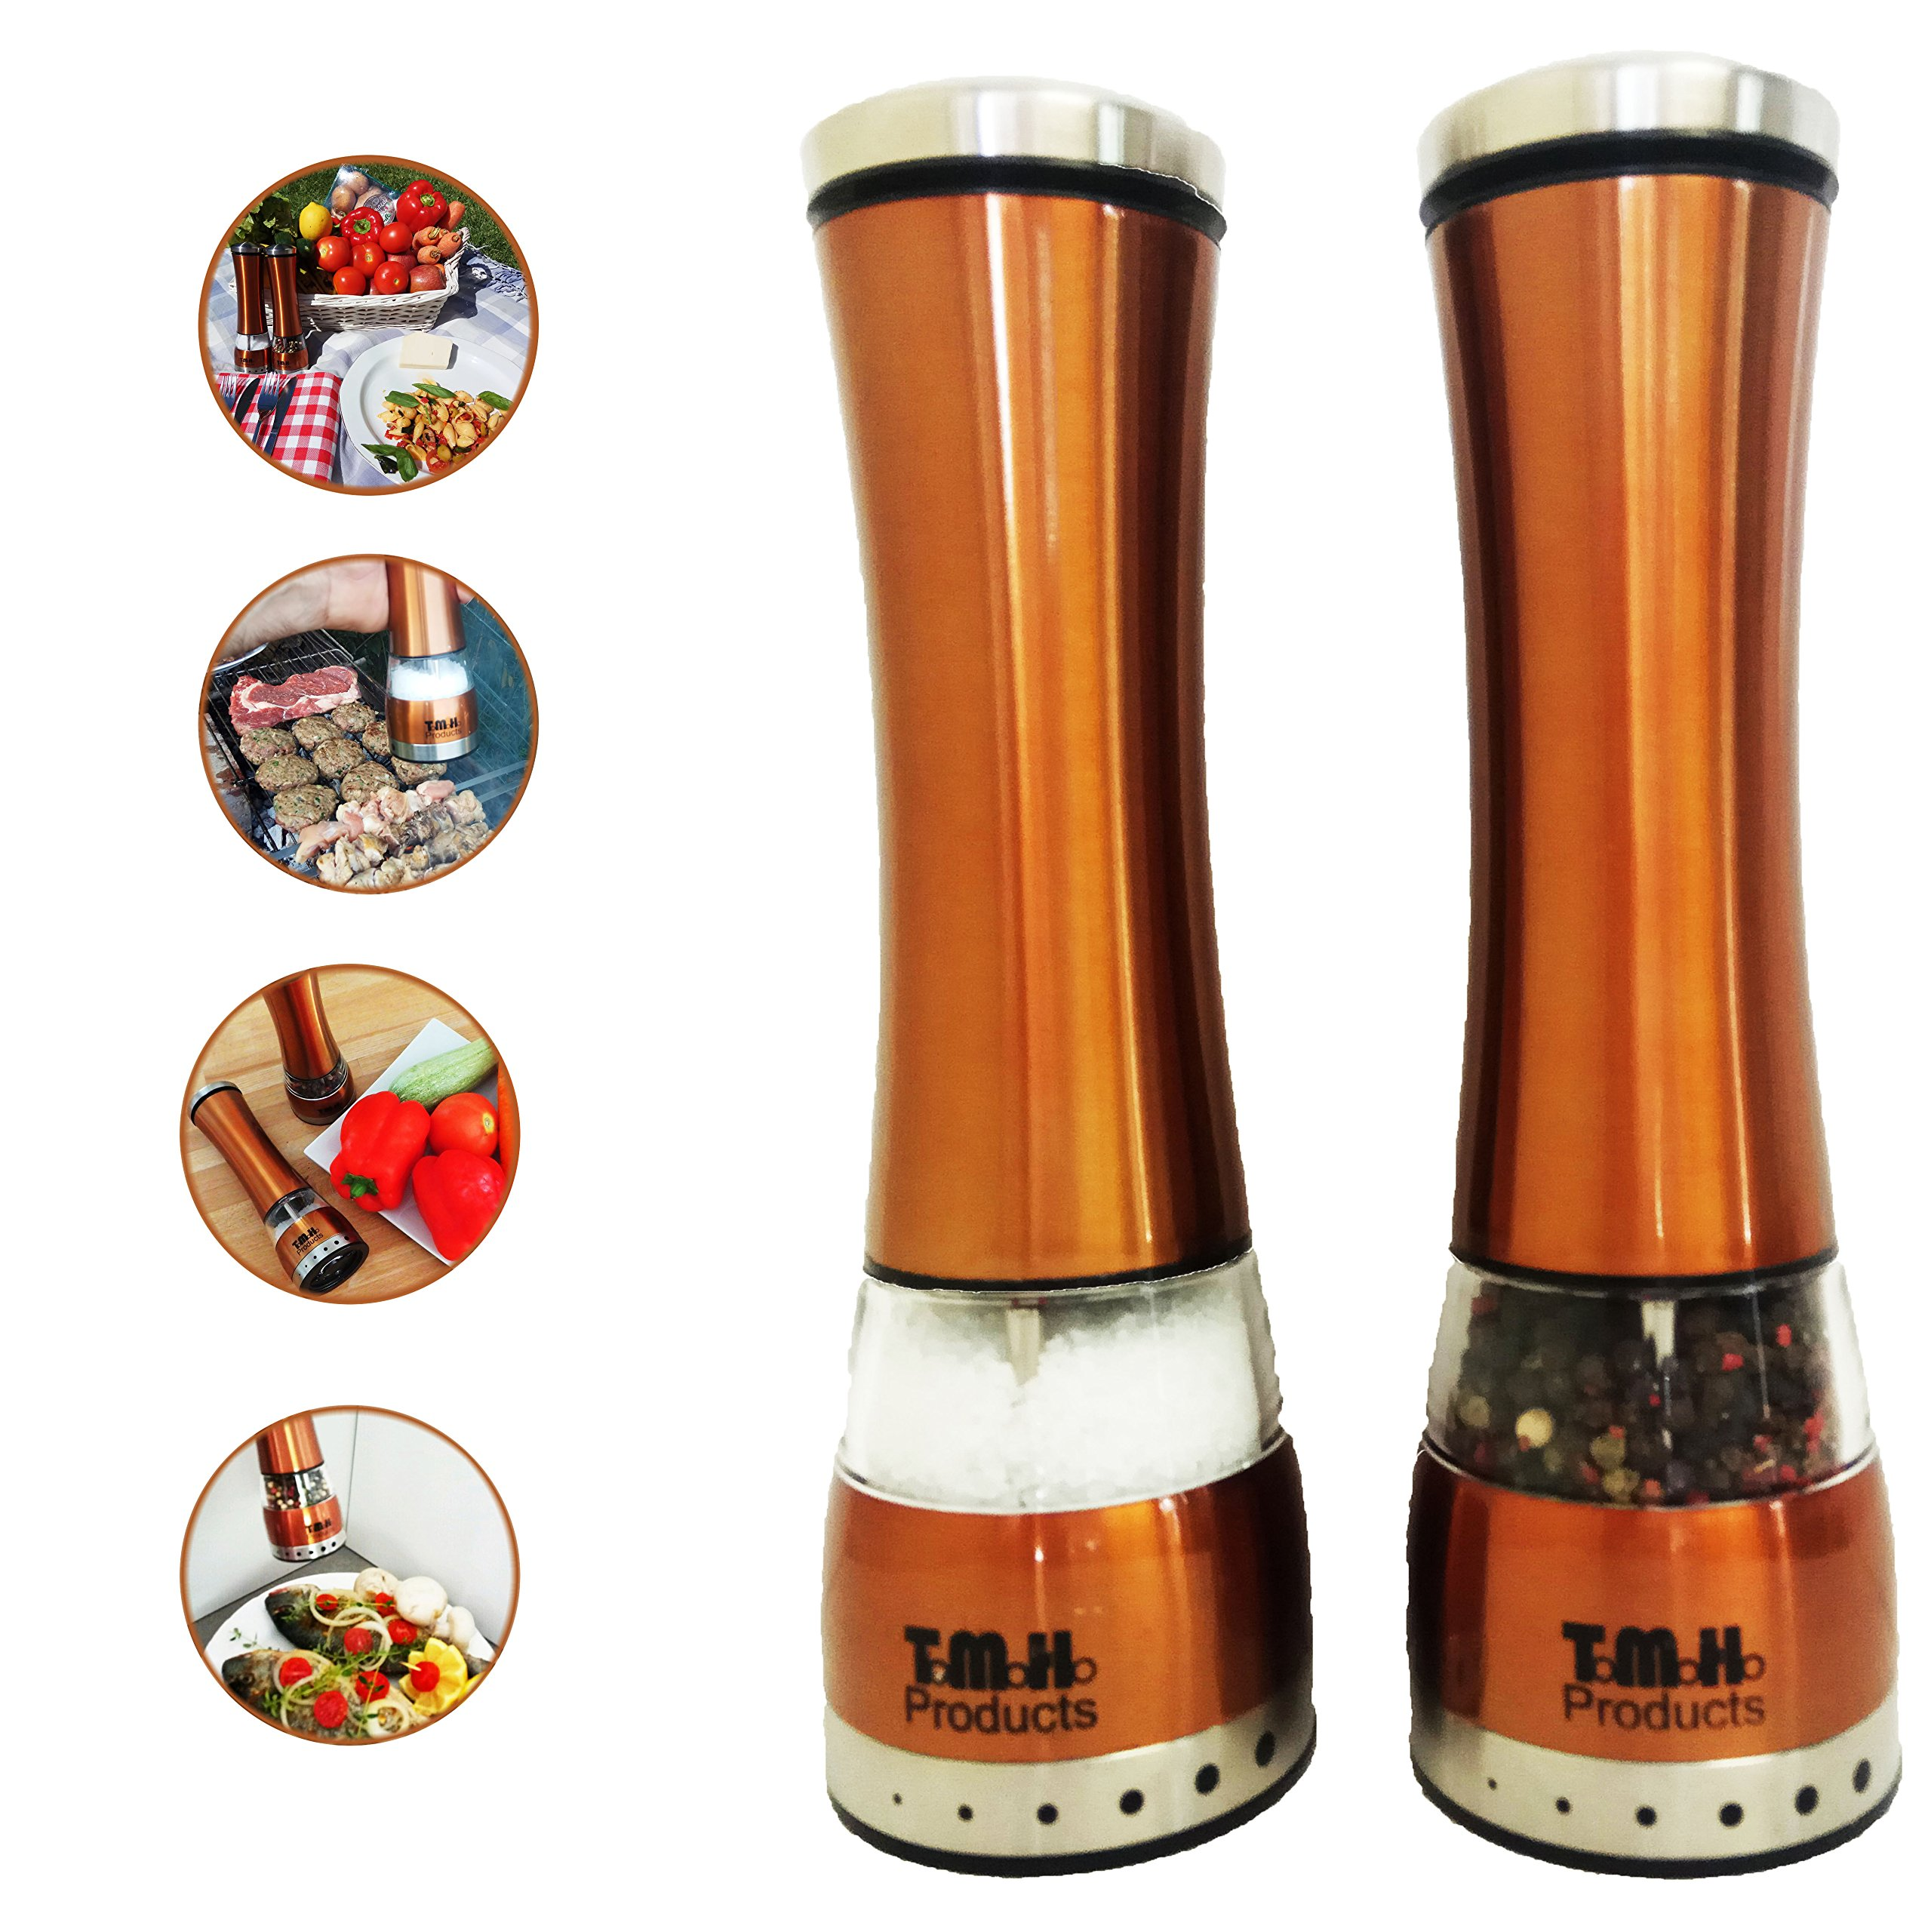 Salt and Pepper Grinder Set, Adjustable Salt Grinders by T.M.H. Products | ELECTRIC SET of 2Mills, Simple to Use with Strong Mechanism | Polished Stainless-Steel | Accent Copper Salt and Pepper